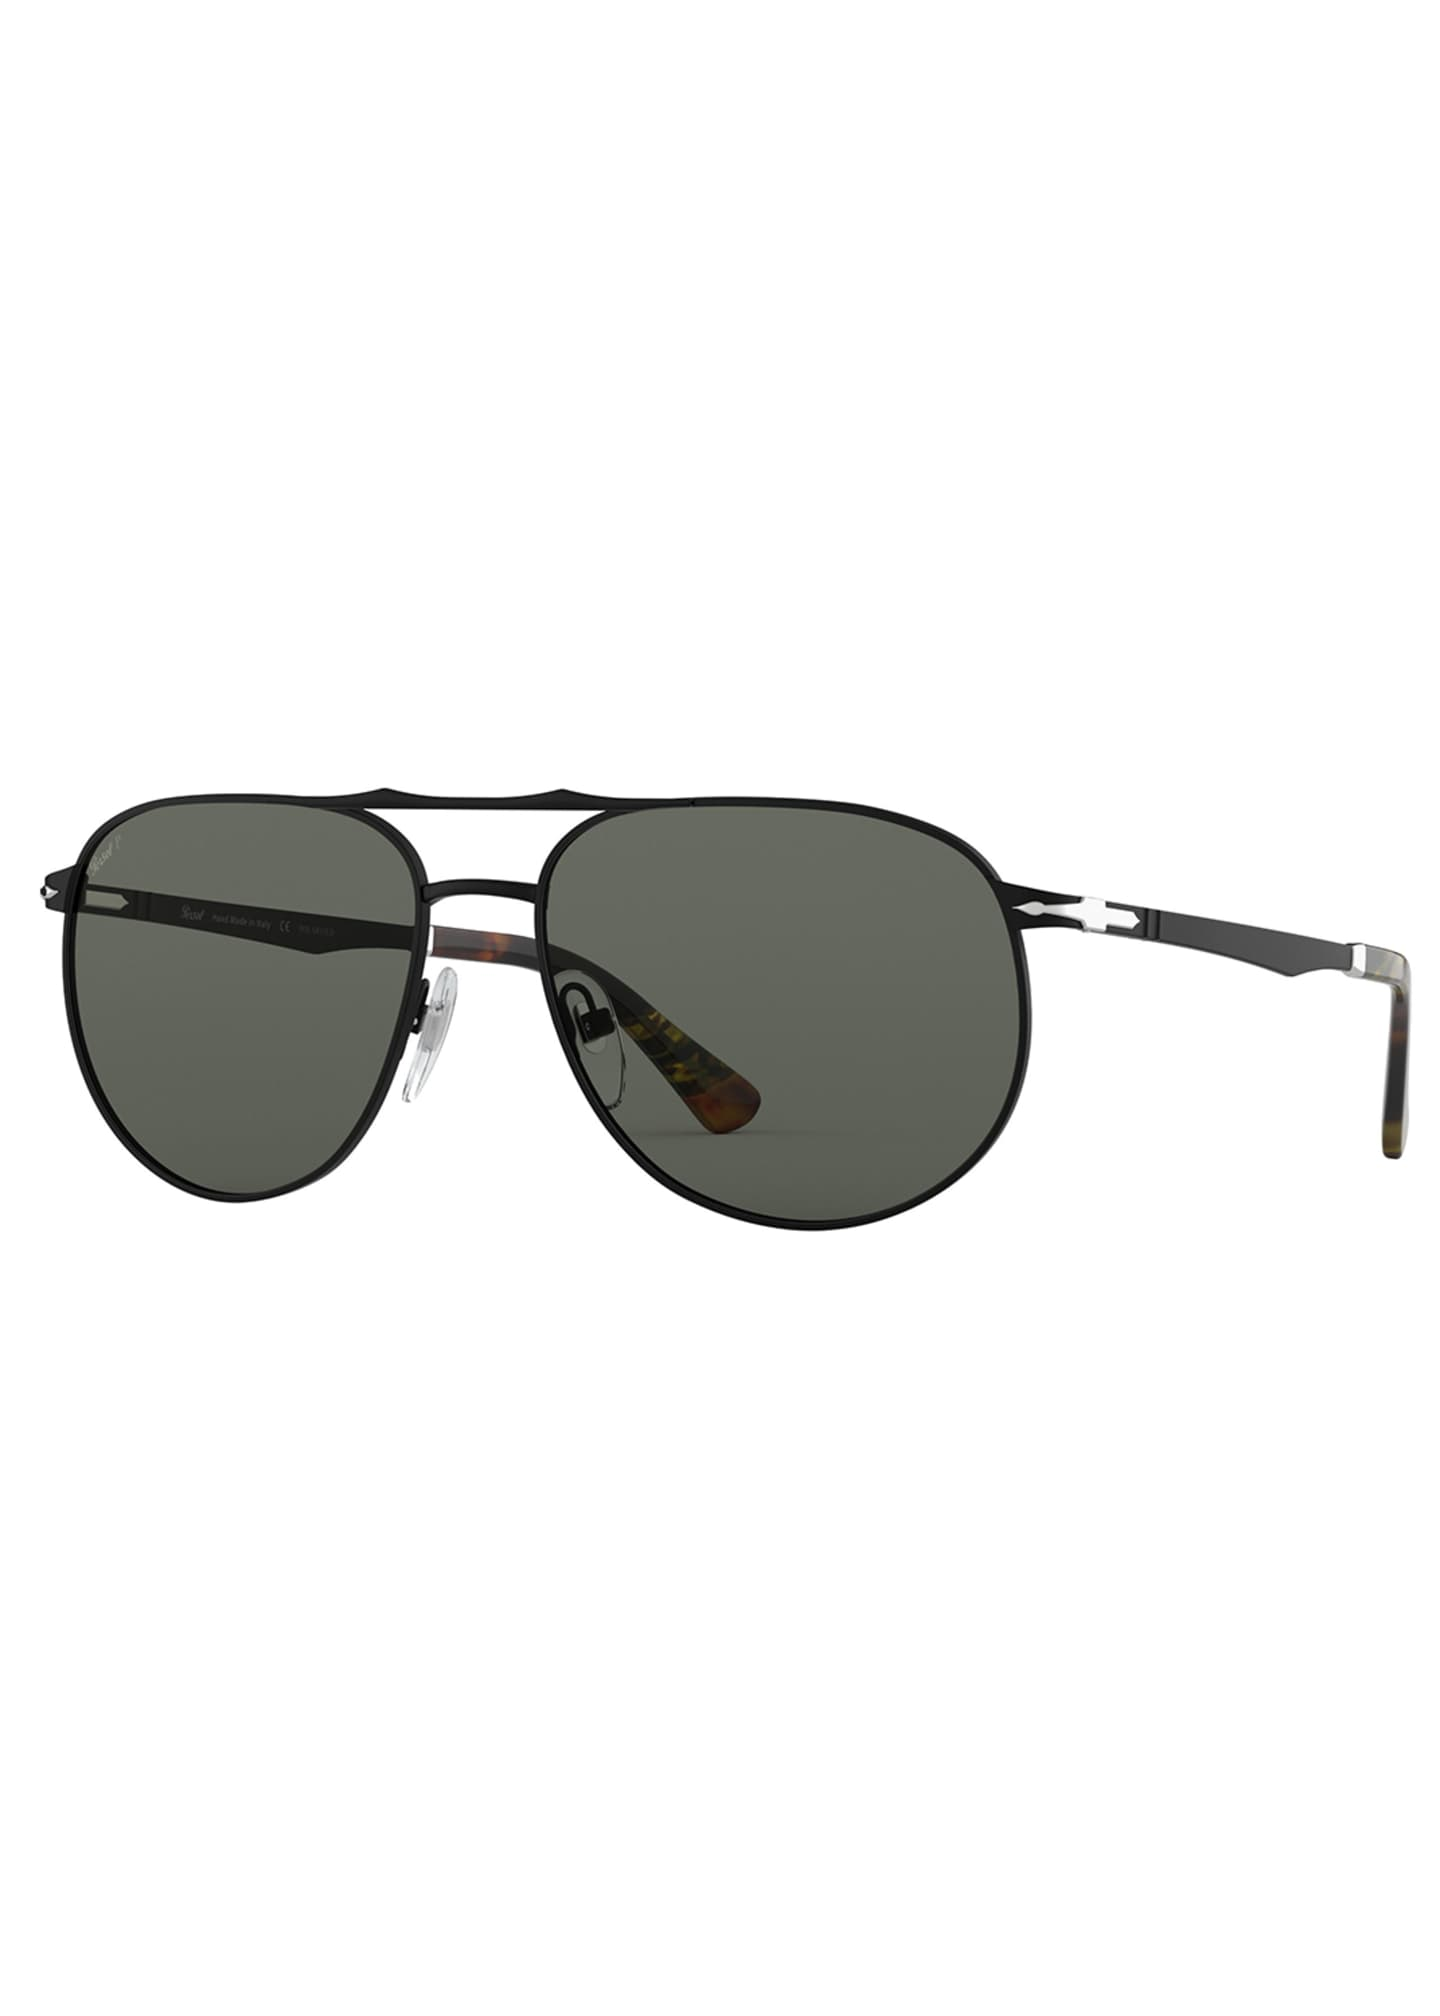 Persol Men's PO2455S Metal Sunglasses